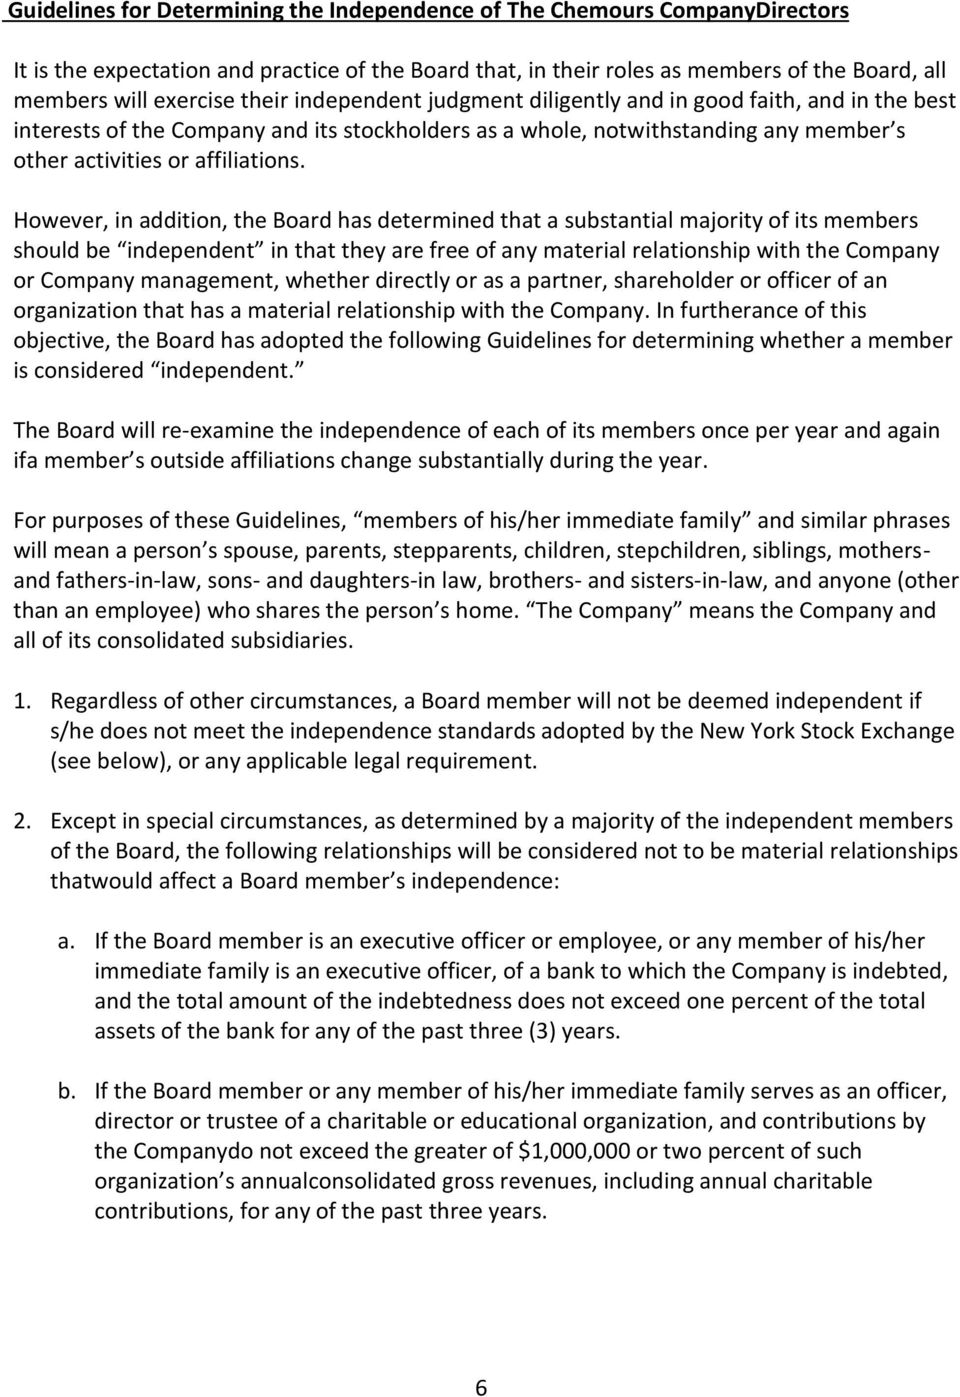 However, in addition, the Board has determined that a substantial majority of its members should be independent in that they are free of any material relationship with the Company or Company